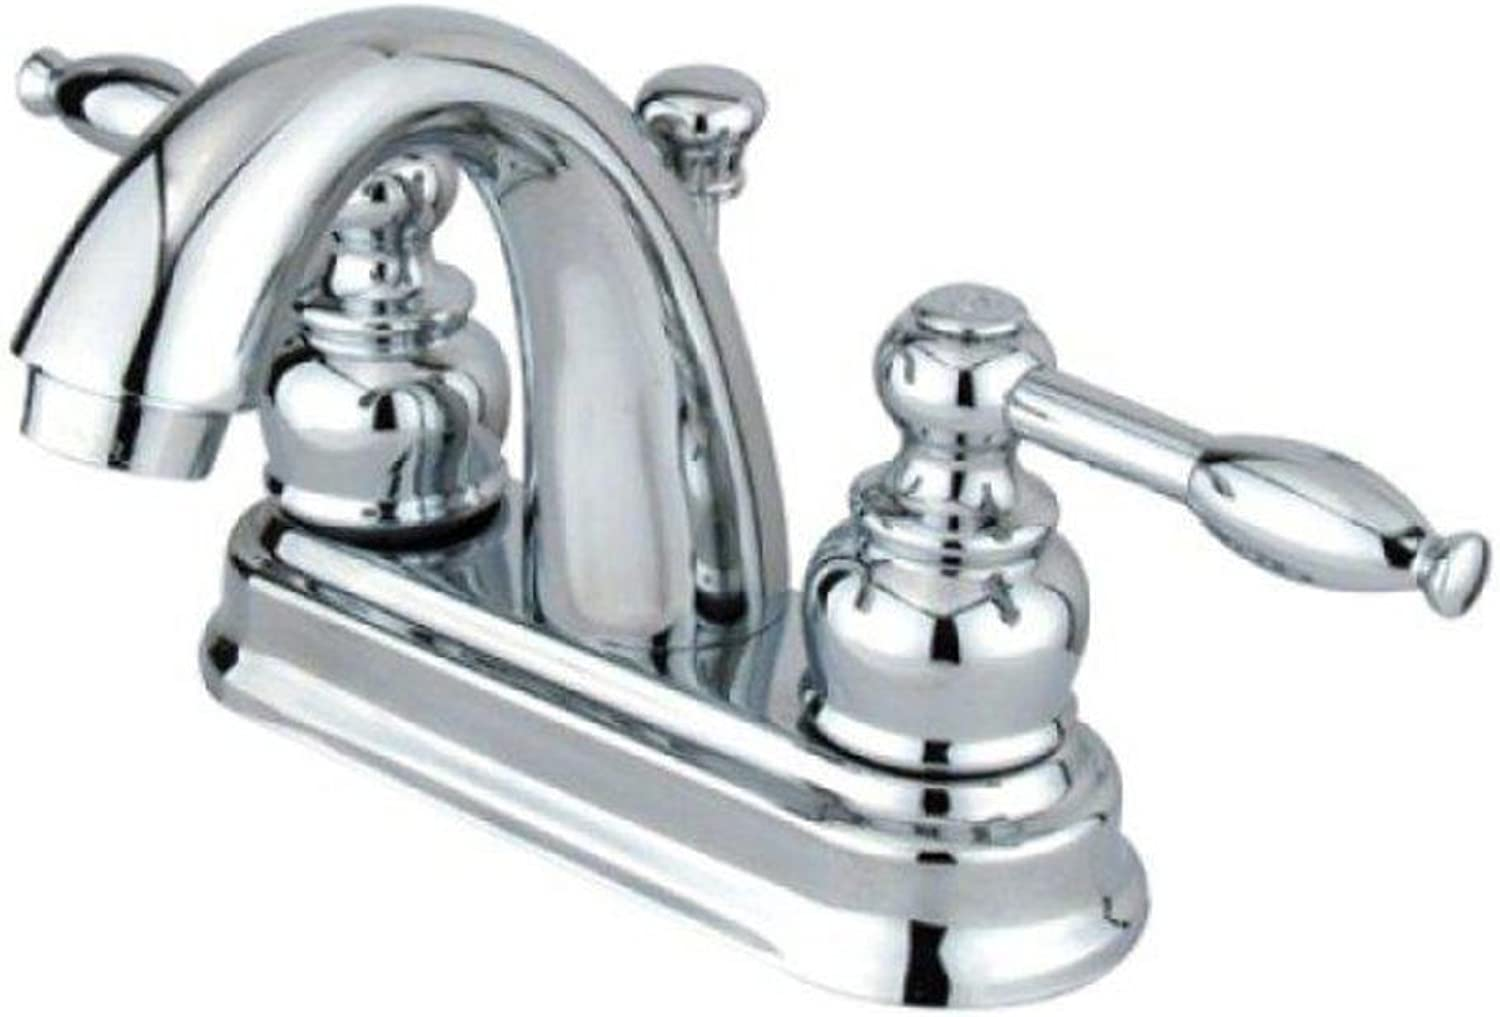 Kingston Brass Gkb5611Kl Polished Chrome Knight Knight Centerset Bathroom Faucet With Pop-Up Drain Assembly And Metal Lever Handles